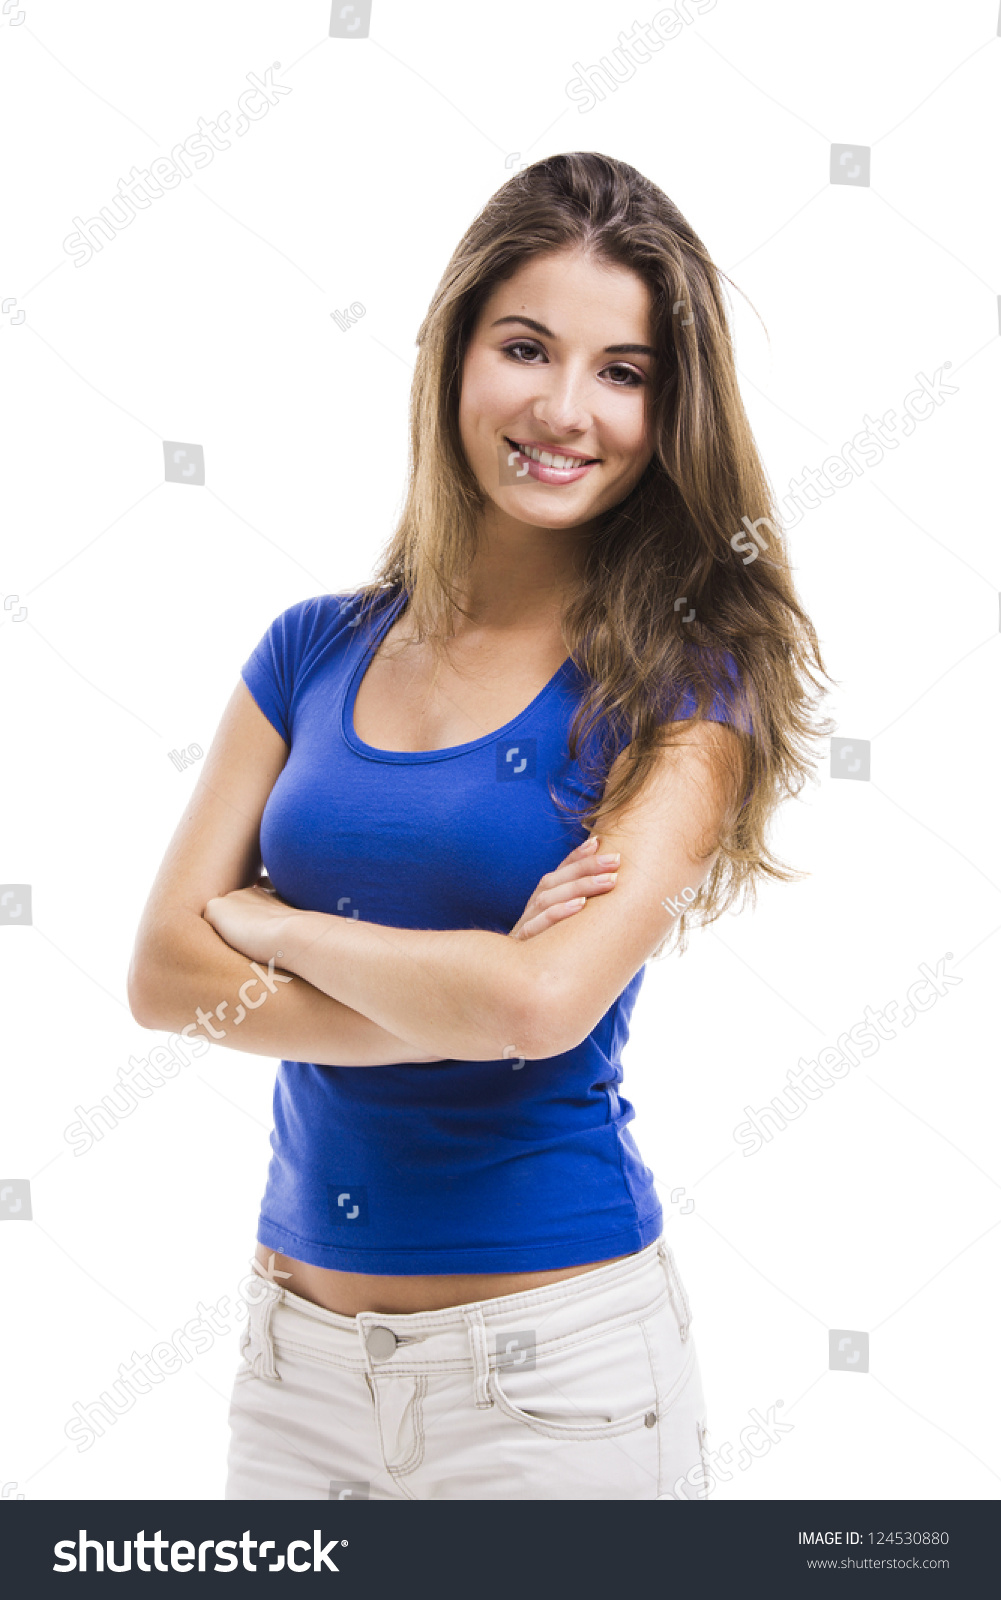 Stock Photo Aletia 164802918: Beautiful Young Woman Standing Arms Crossed Stock Photo